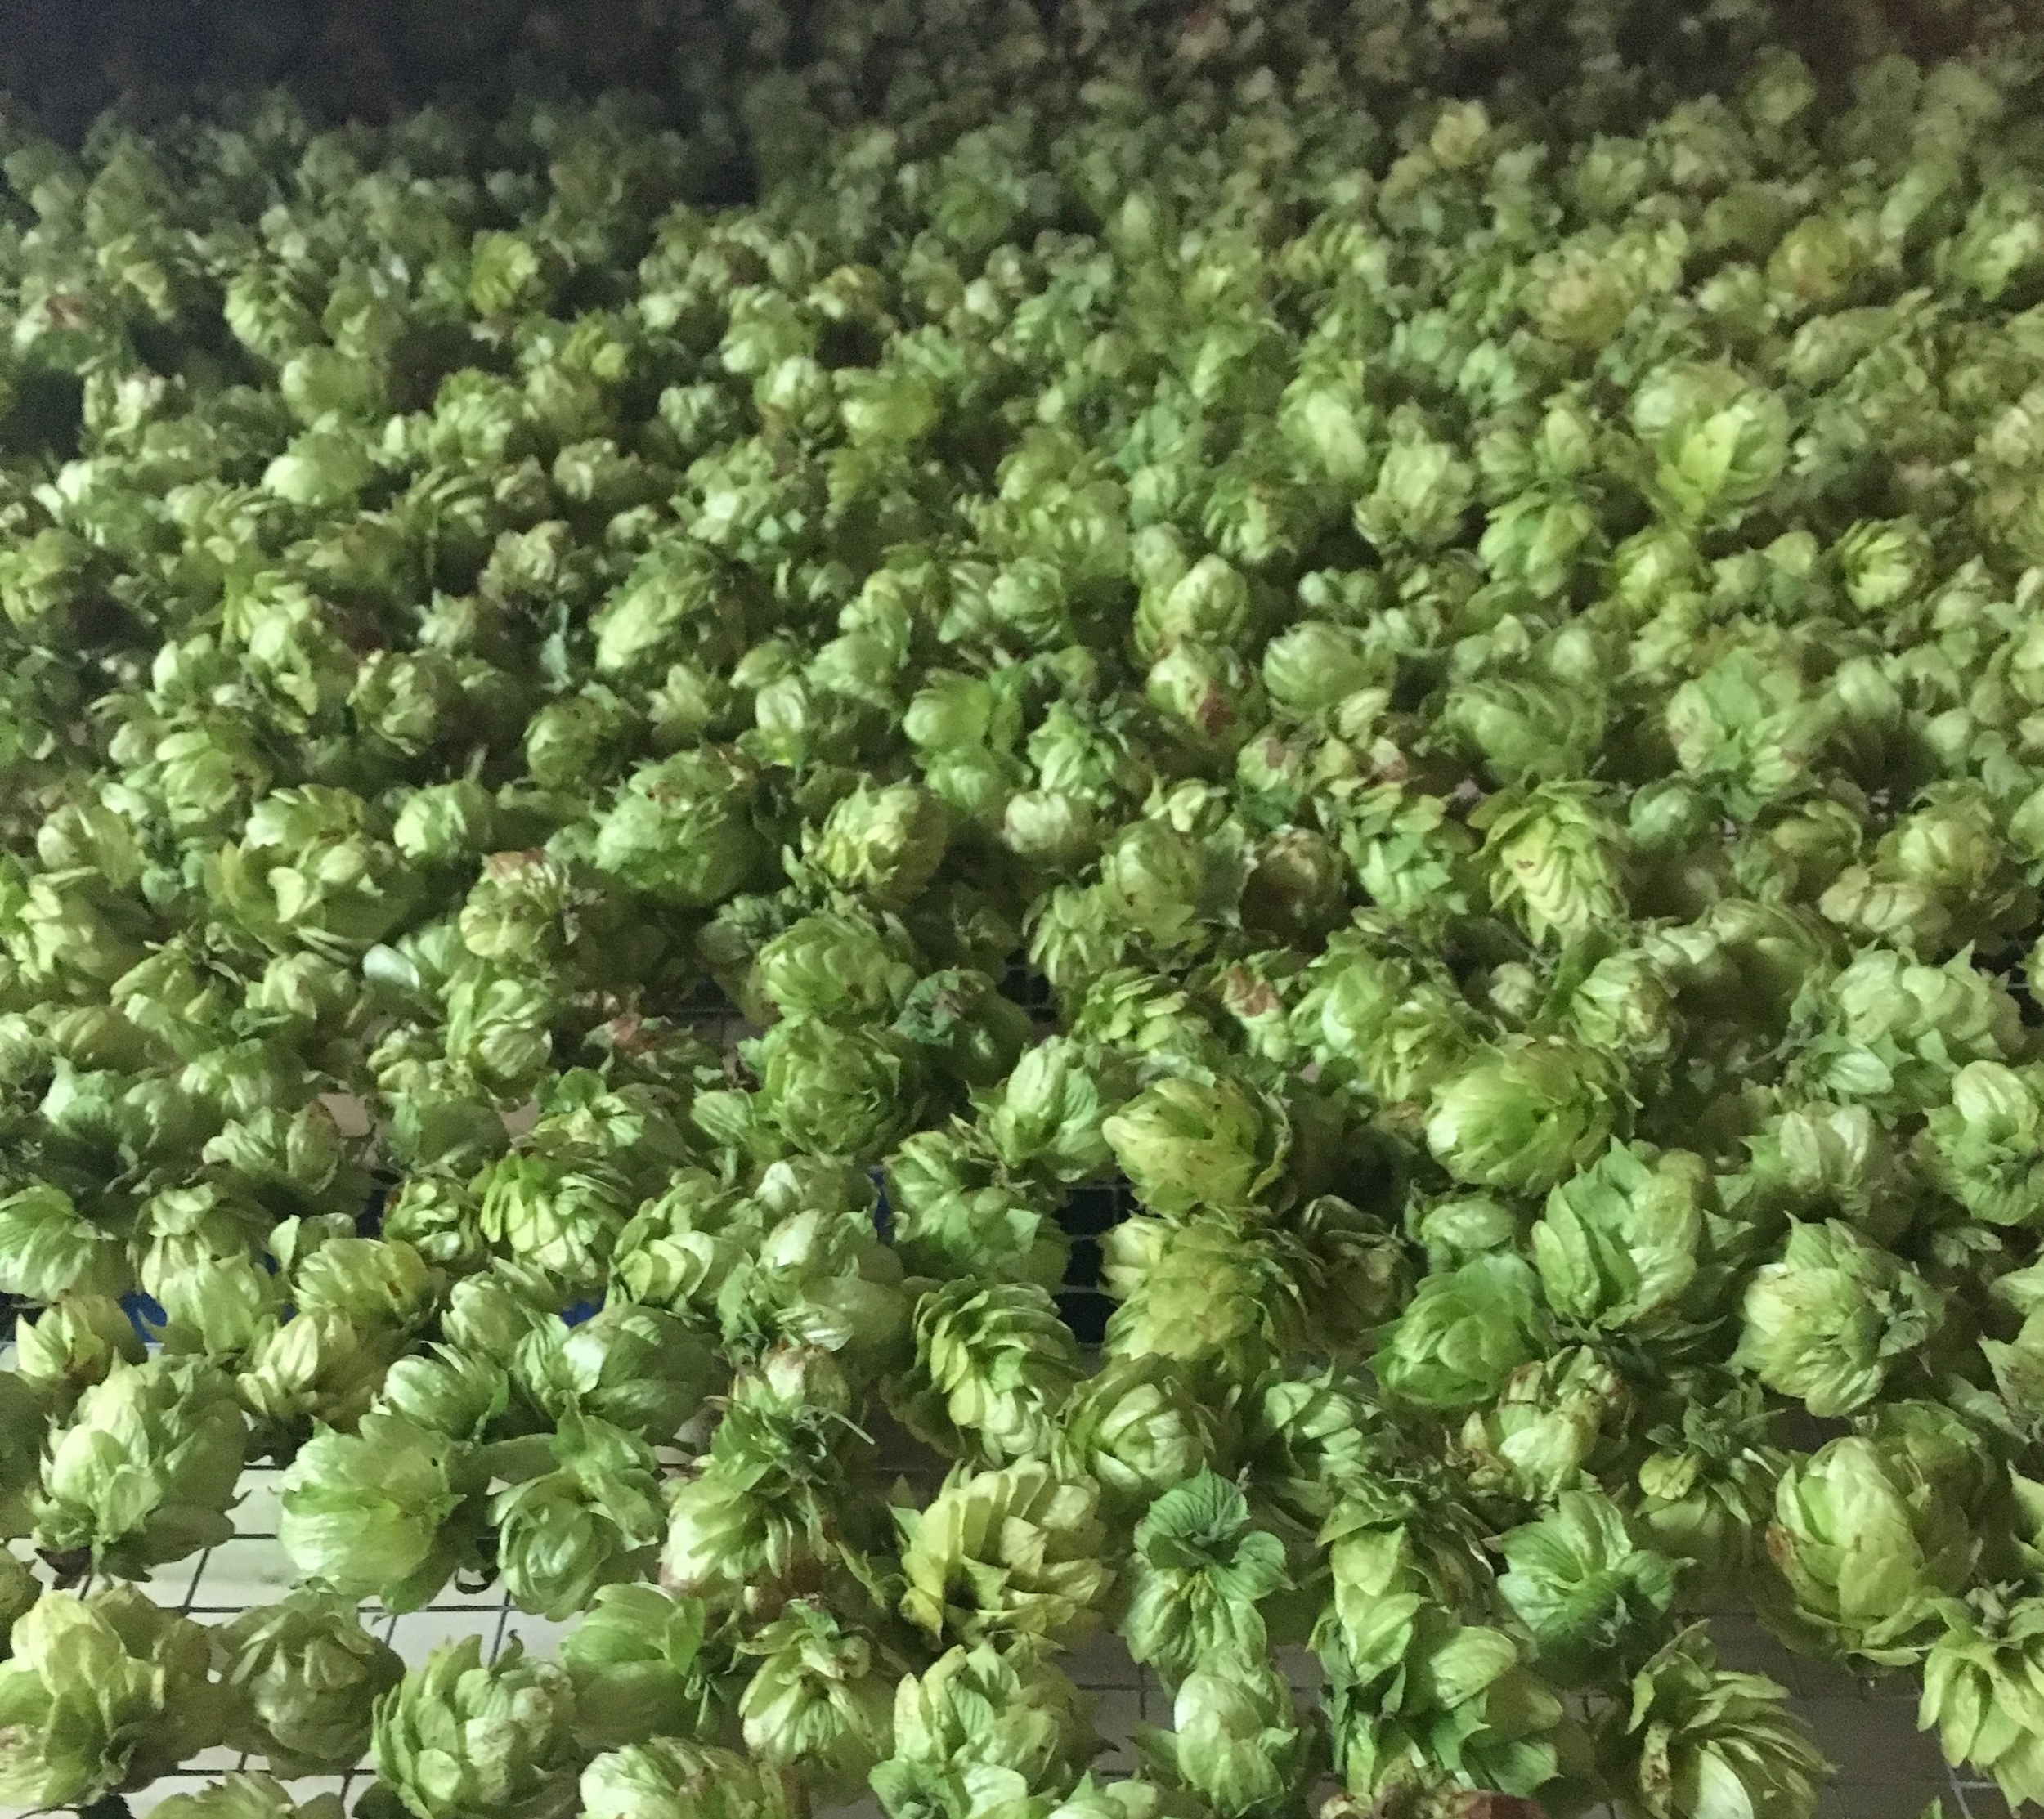 DRY HOP FLOWERS - Our hops are dried to the optimum % dry weight and sealed in a vacuum bag. Dry hops should be stored in a fridge and will maintain their freshness and aromas for up to 12 months if stored correctly.  Dry hops are available year round dependent upon quantities available.